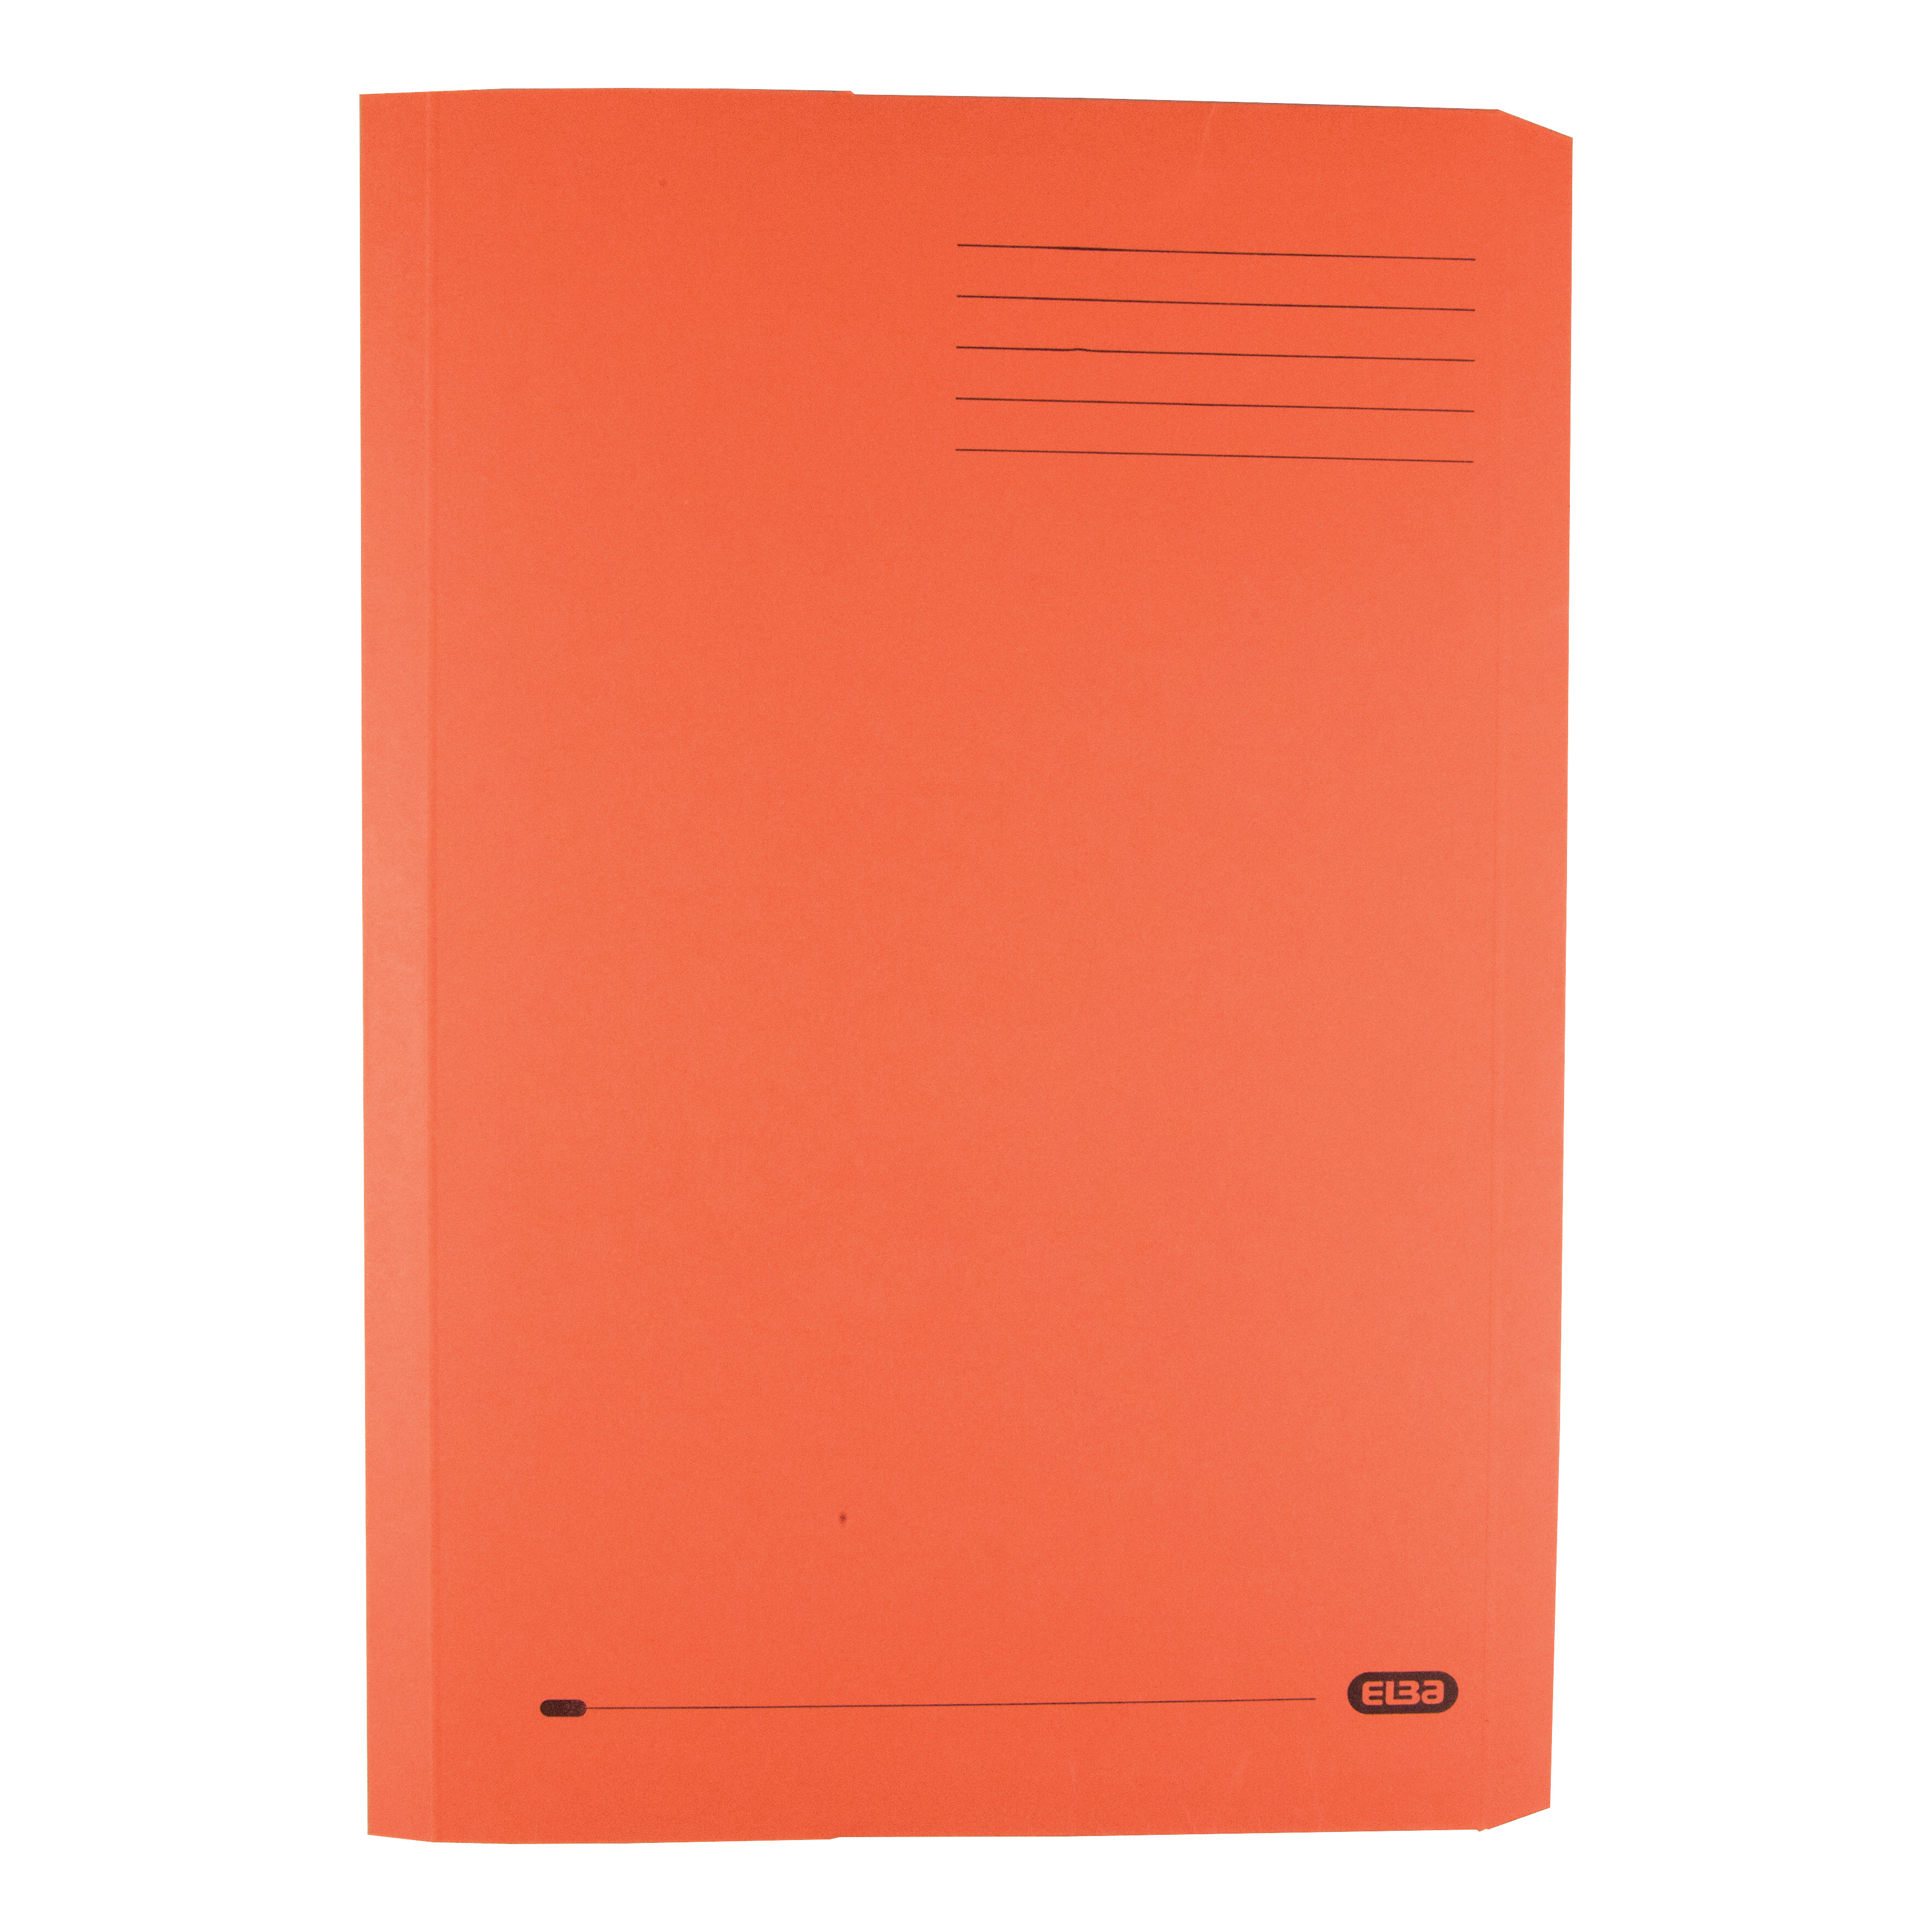 Elba Clifton Flat Bar Pocket (Rear) File 285gsm Capacity 50mm Foolscap Orange Ref 100090321 [Pack 25]